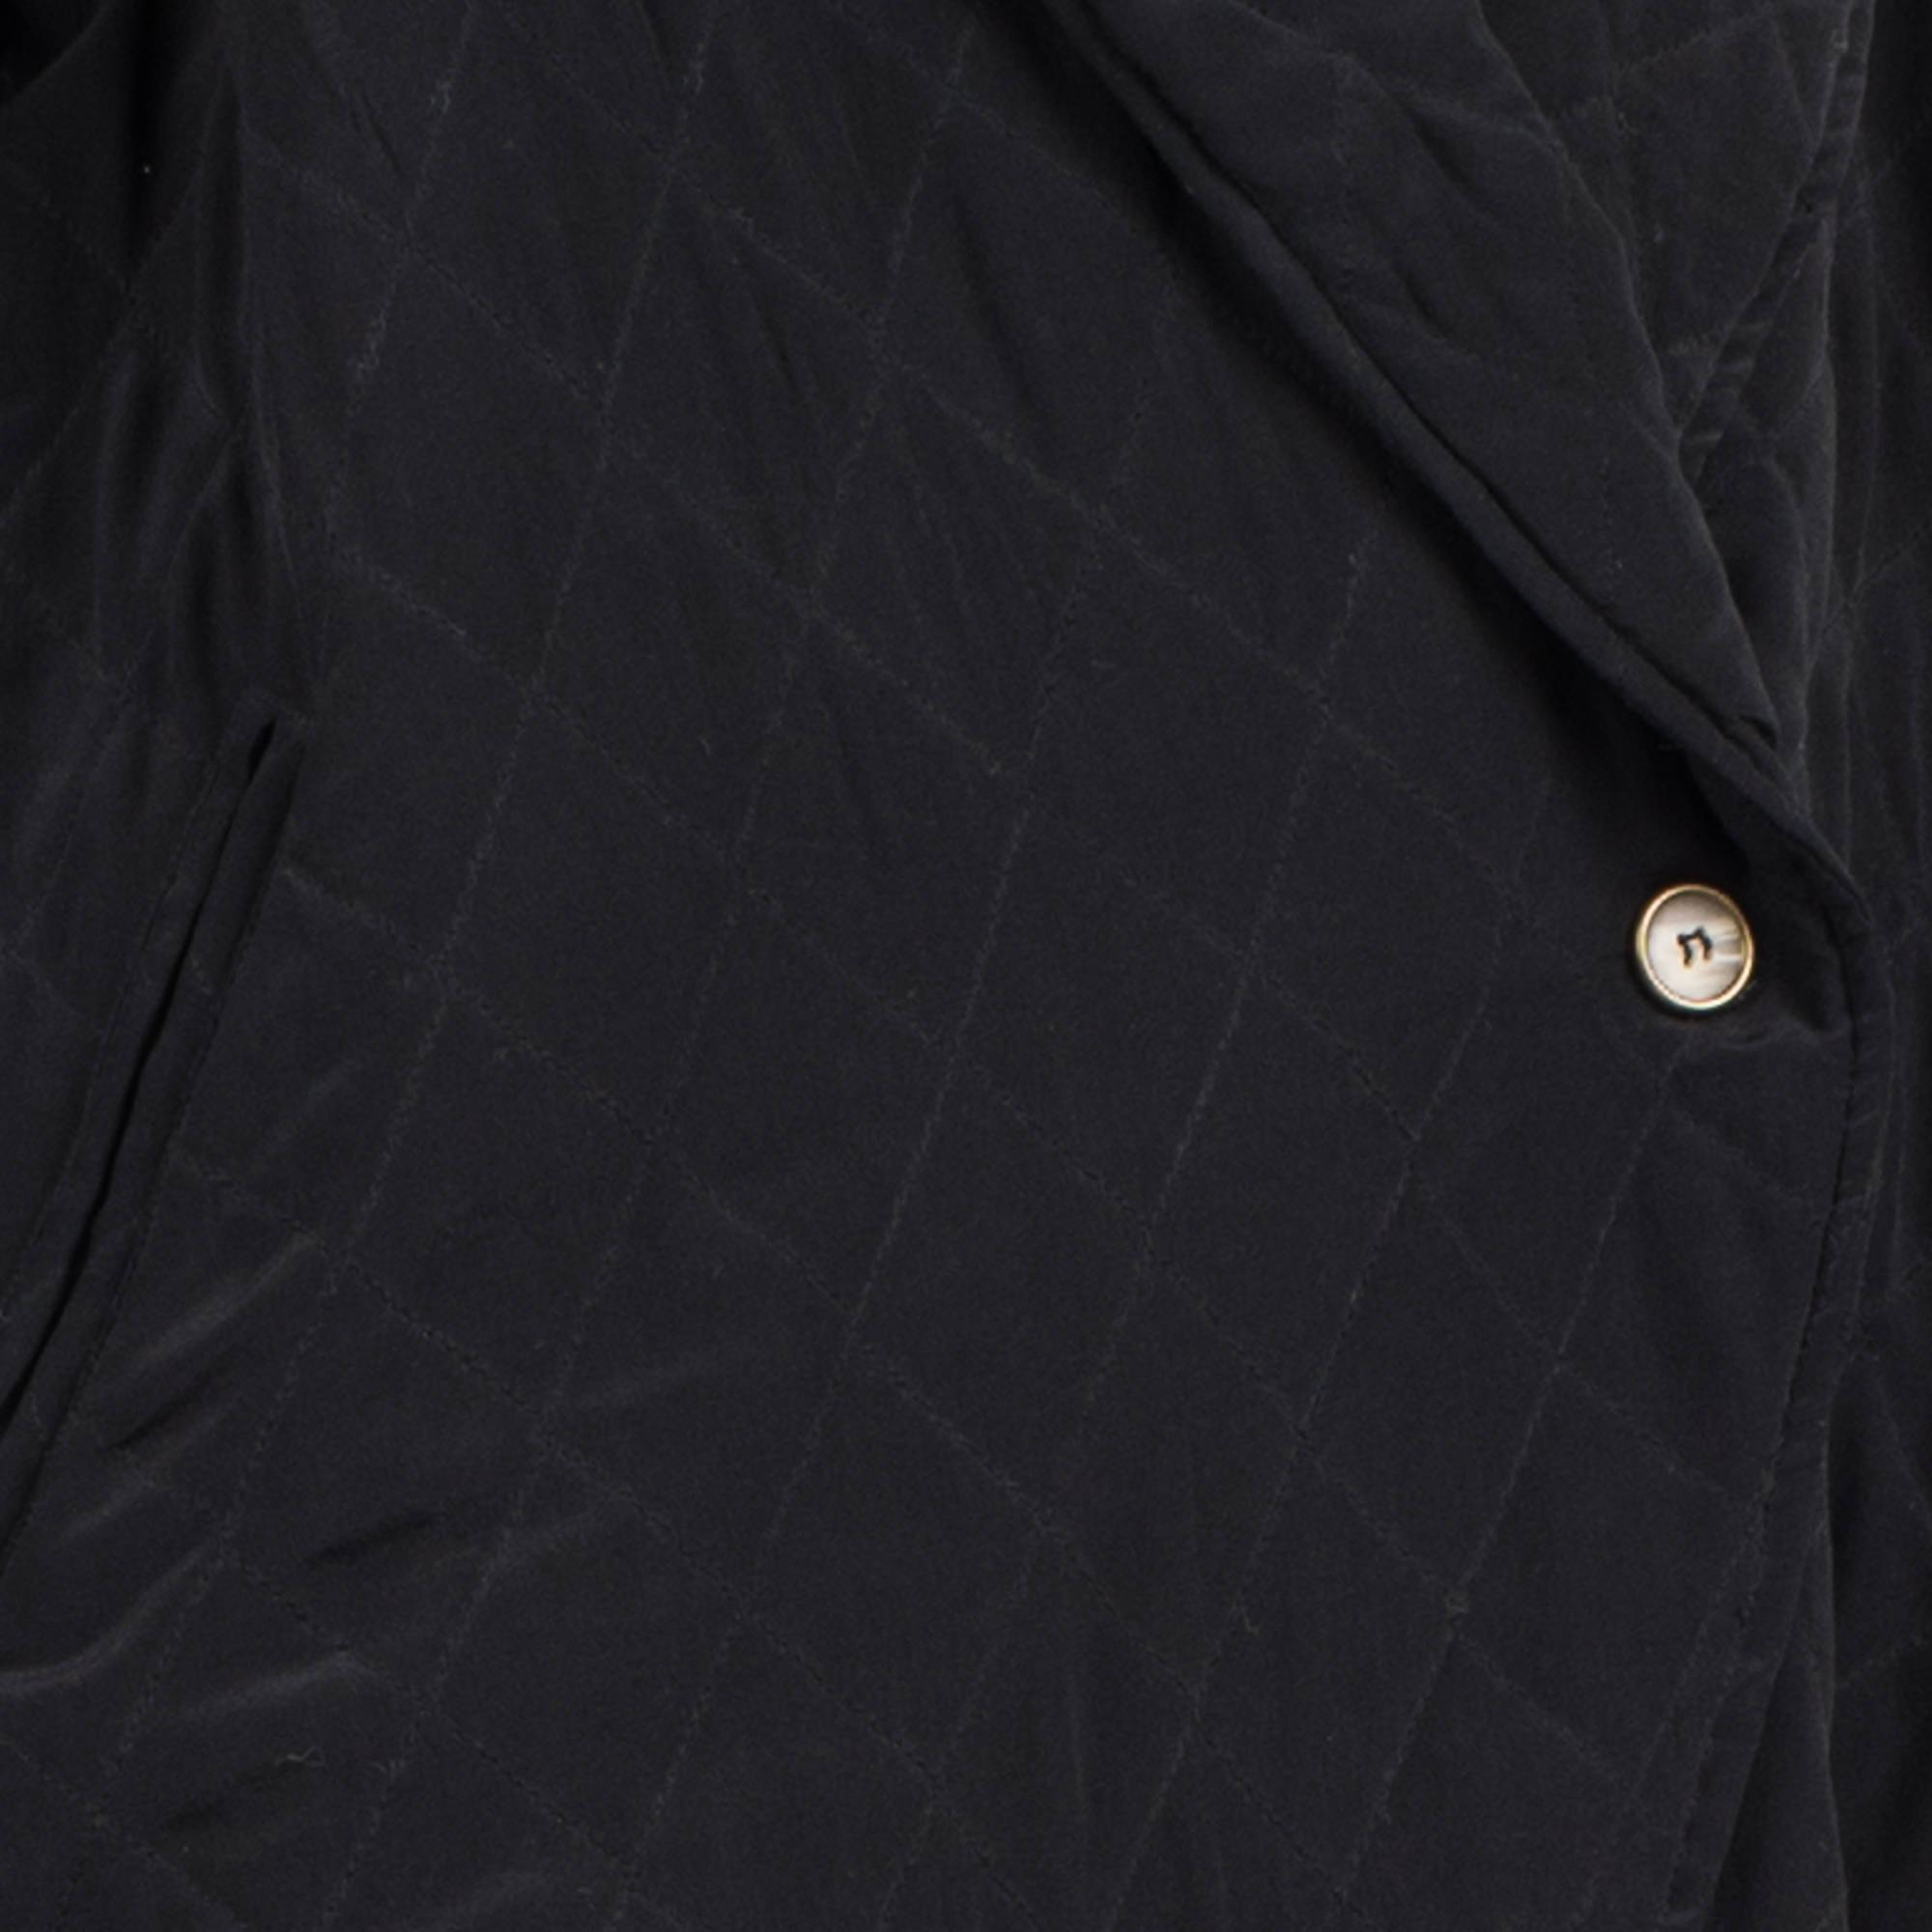 Vintage Jet Black Silk Quilted Oversized Shawl Jacket / S - Closed Caption